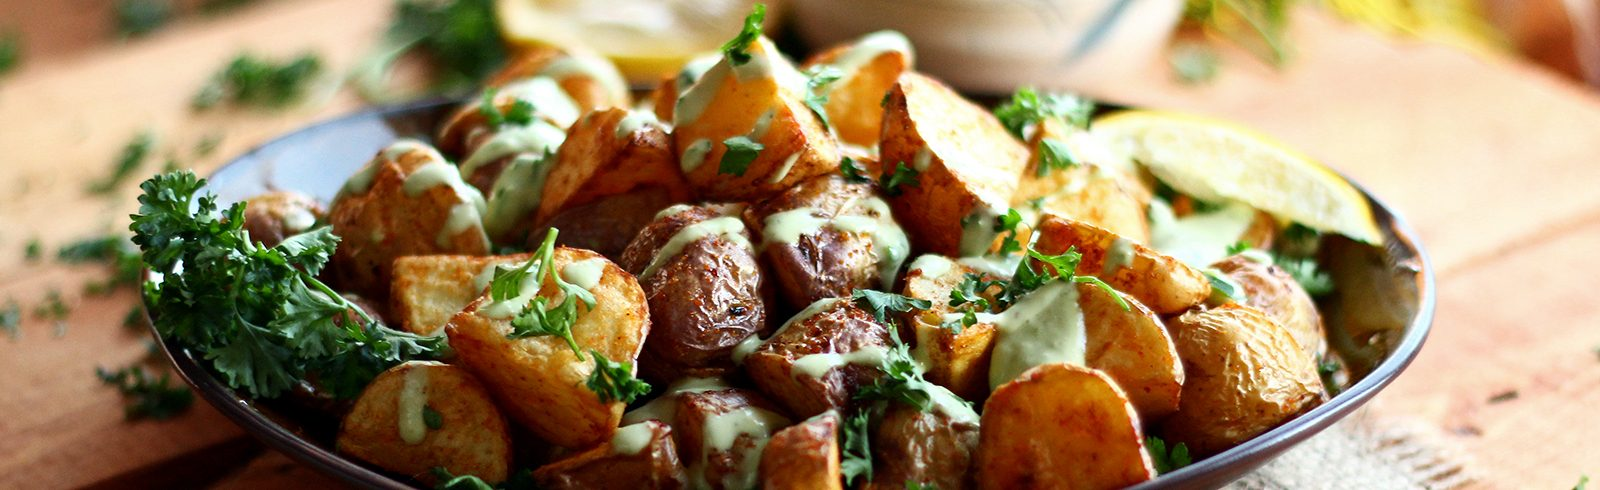 Crispy Potatoes with Garlic Lemon Avocado Aioli